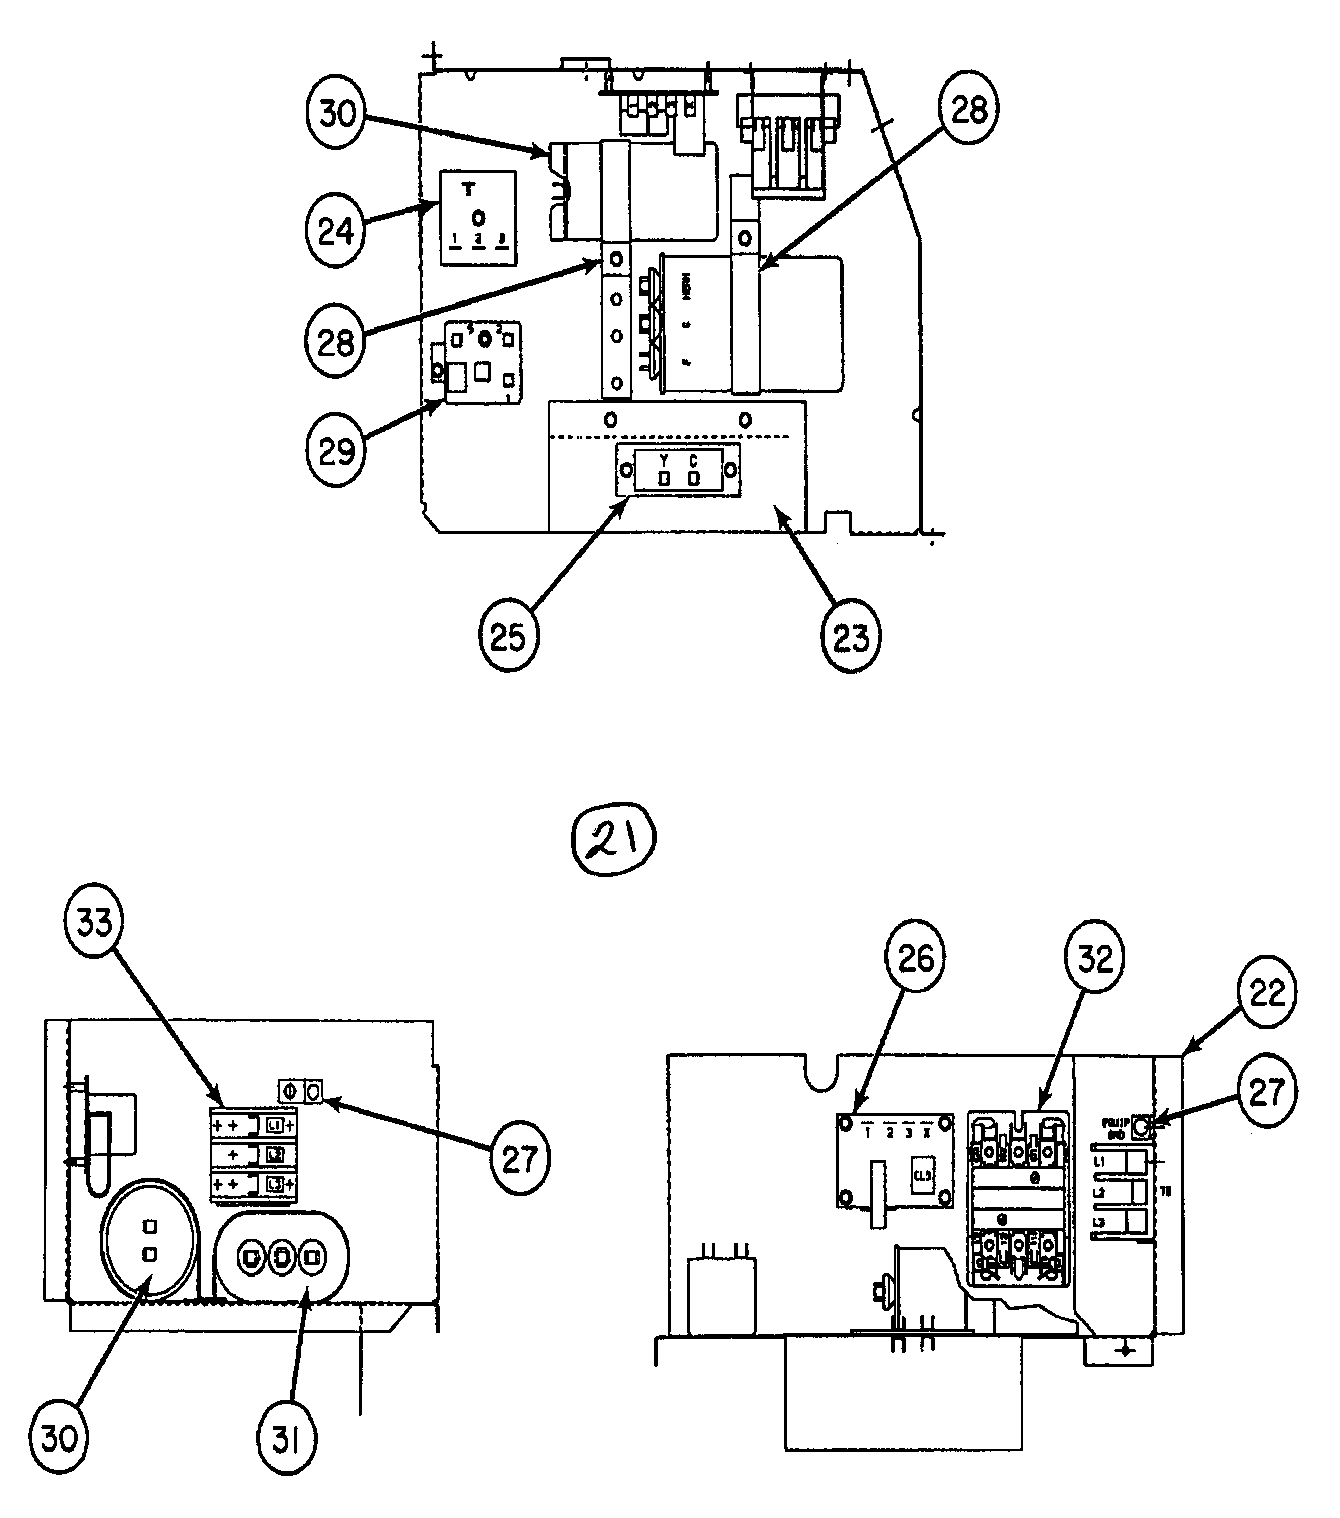 CONTROL PANEL Diagram & Parts List for Model 38hdc036320